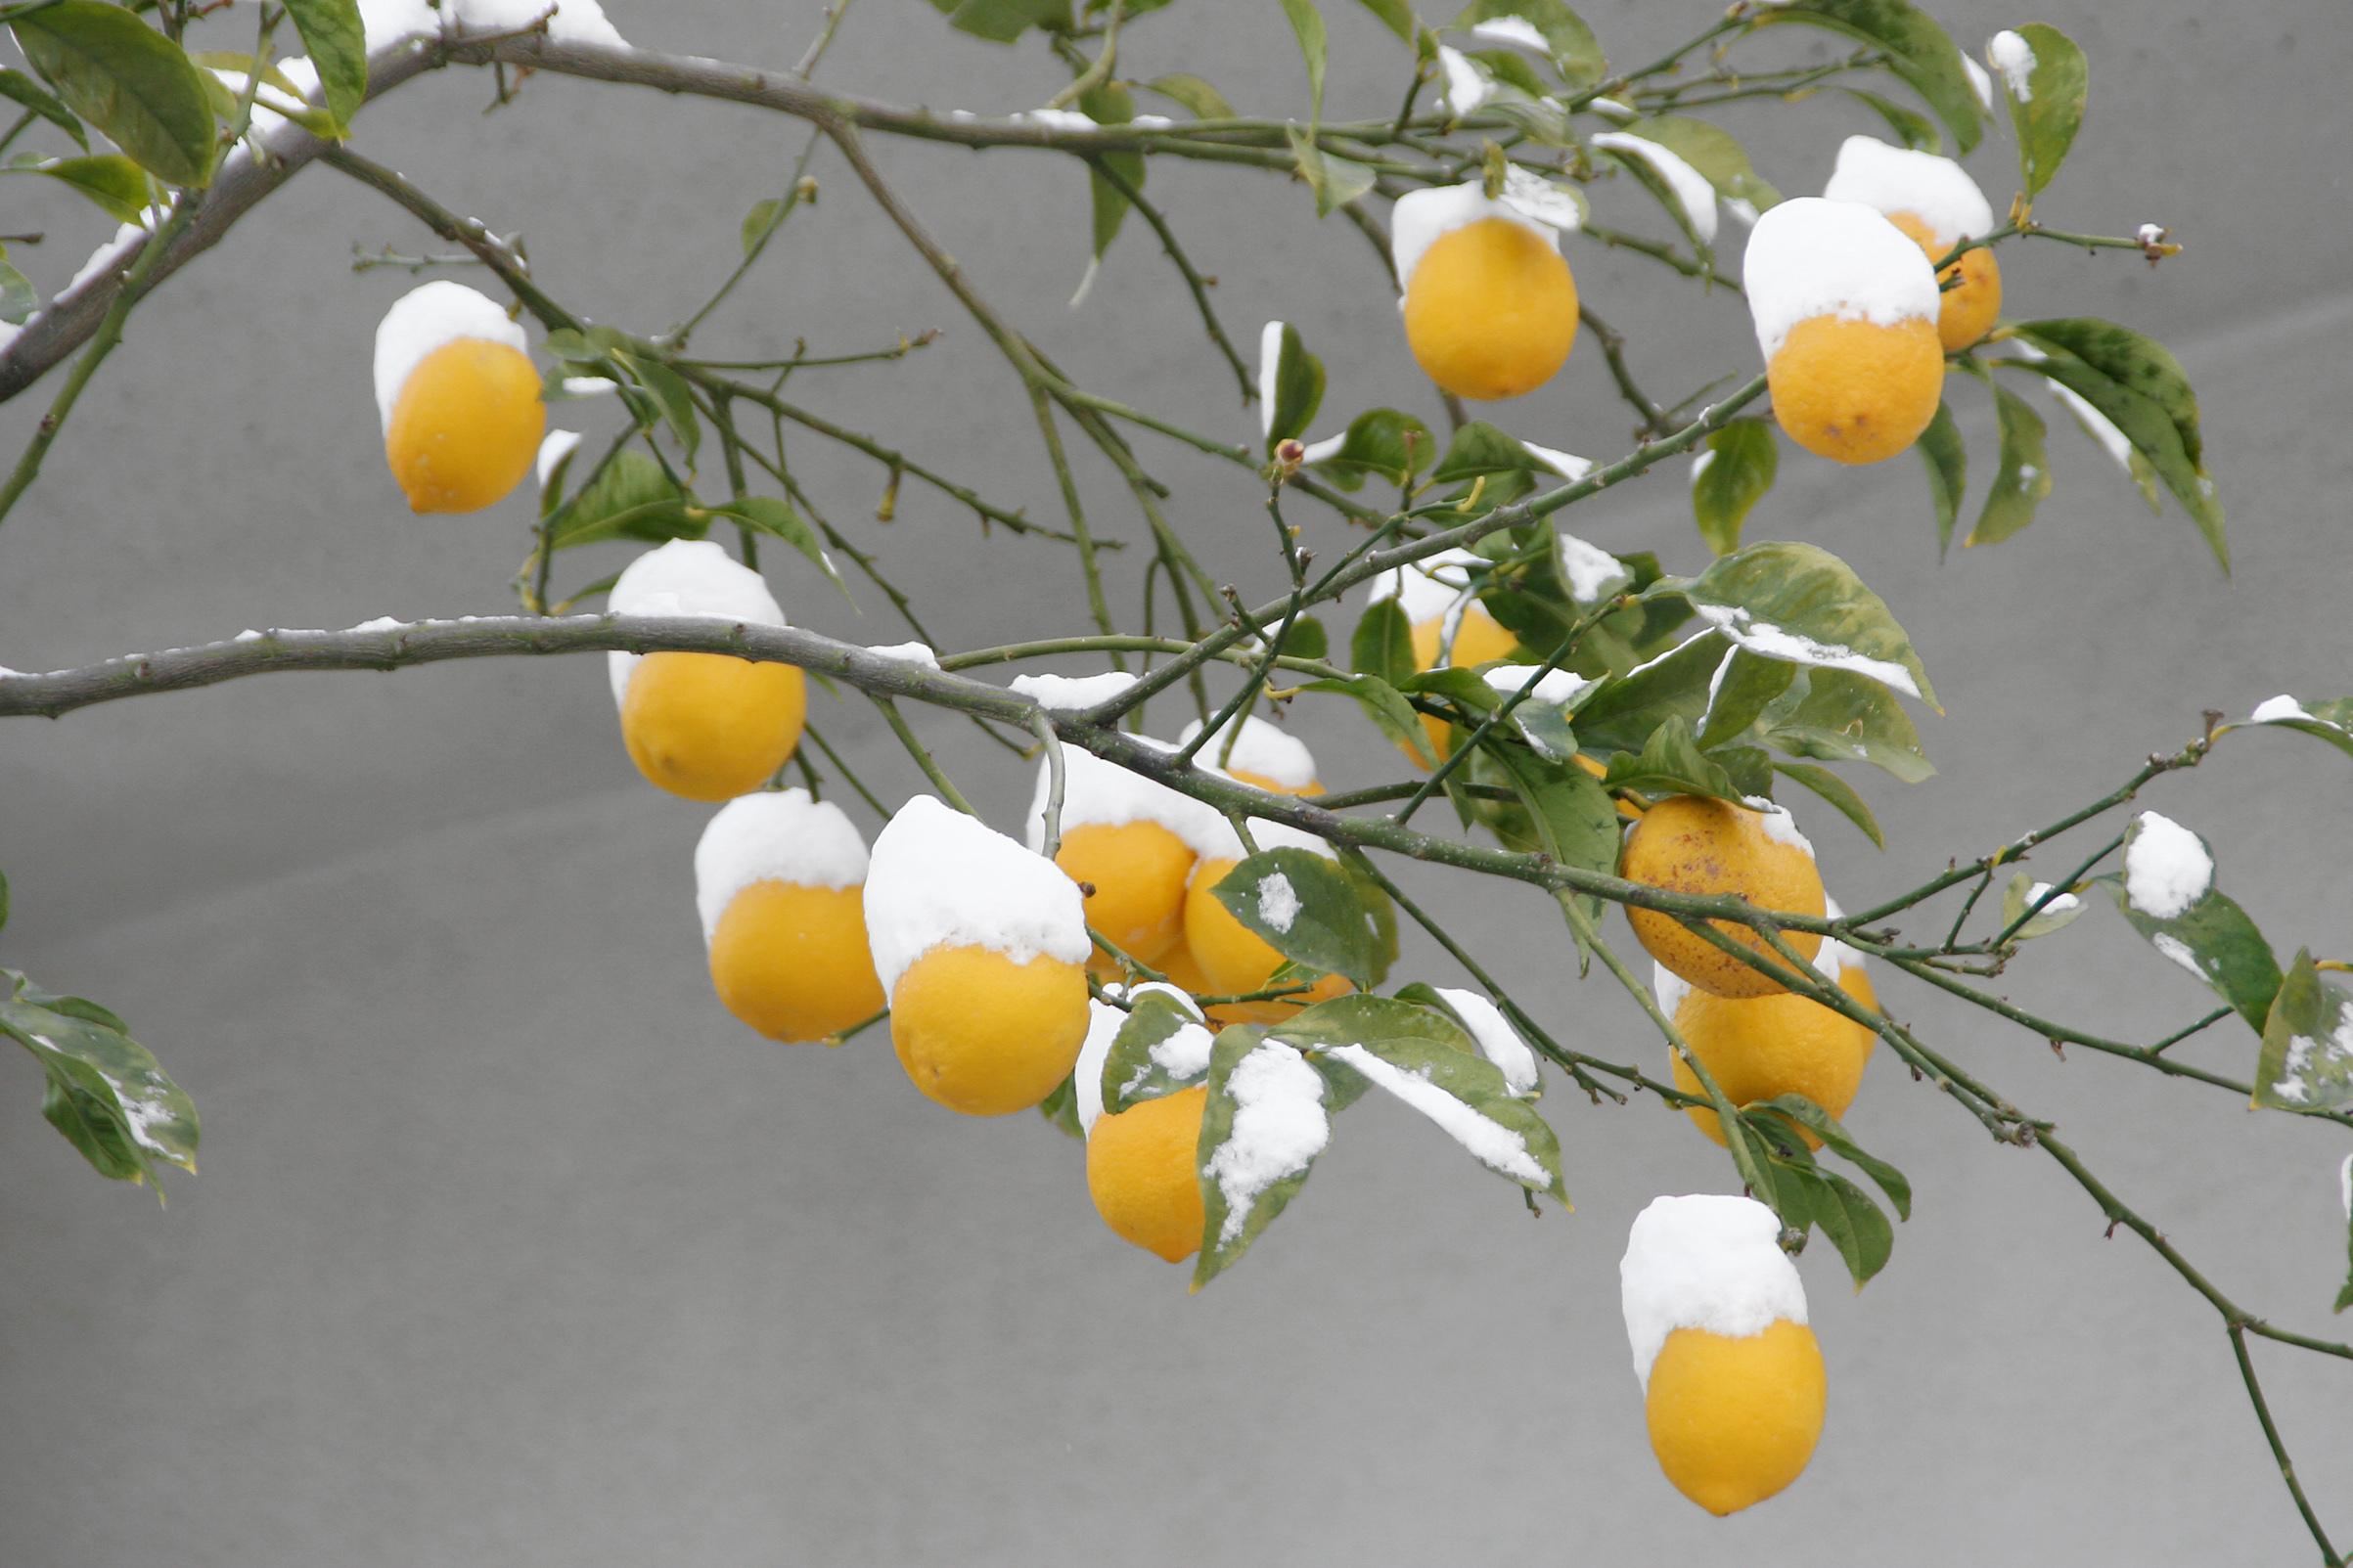 Lemon tree covered with snow